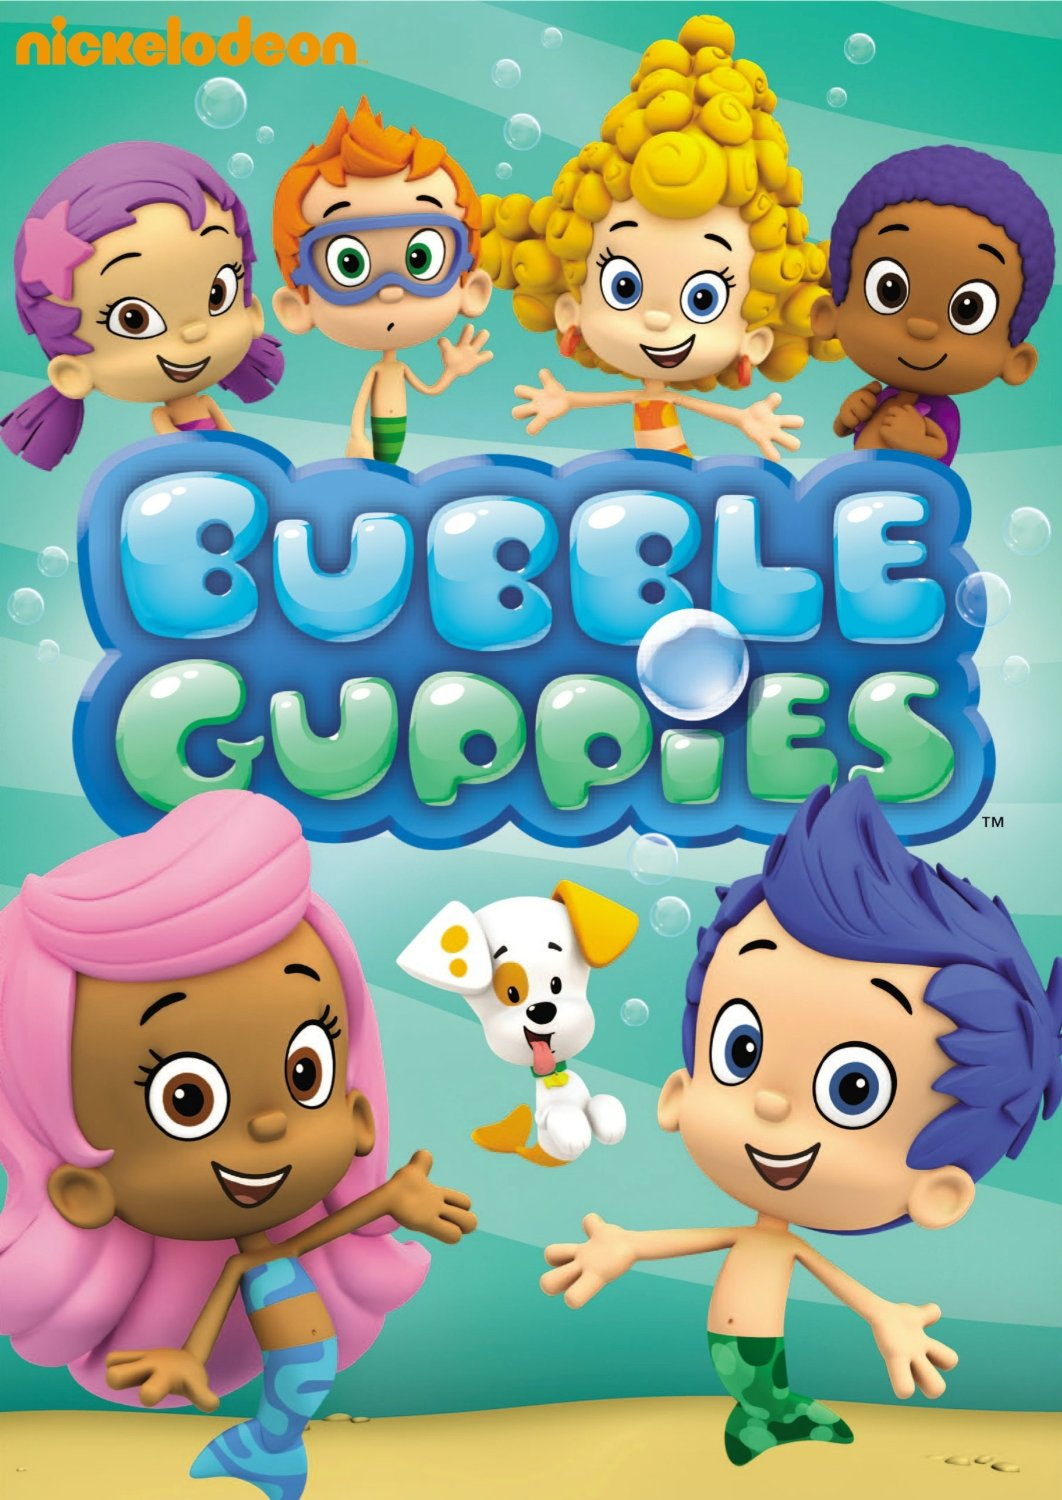 e5909b0346 It s an American preschool children s television series produced for  Nickelodeon (accdg. to wikipedia) a variety-style kids show teaches  preschoolers ...